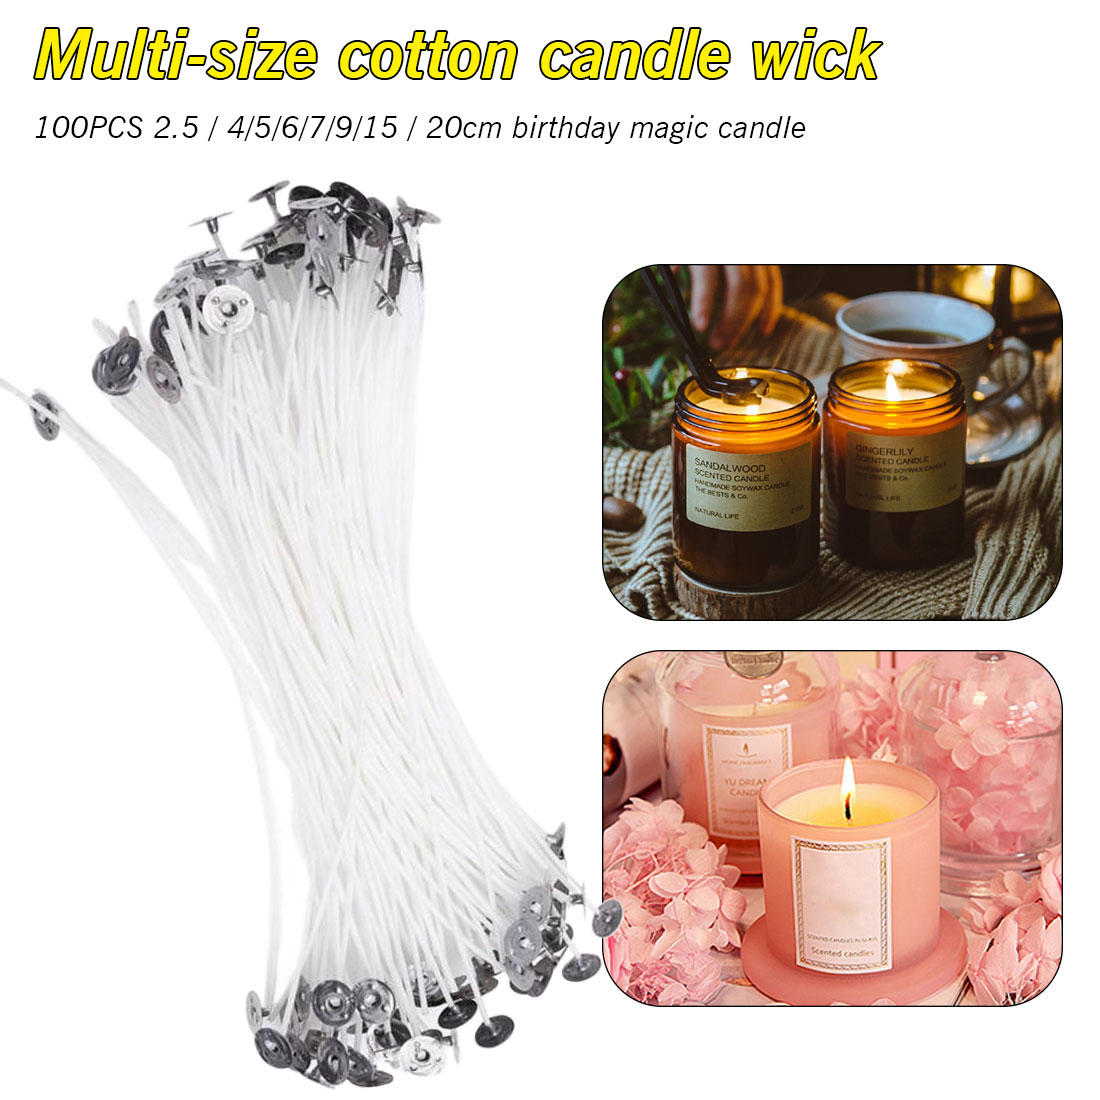 20cm Low Smoke Soy palm Wax Natural Votive Container Pillar Candle Wick 100p